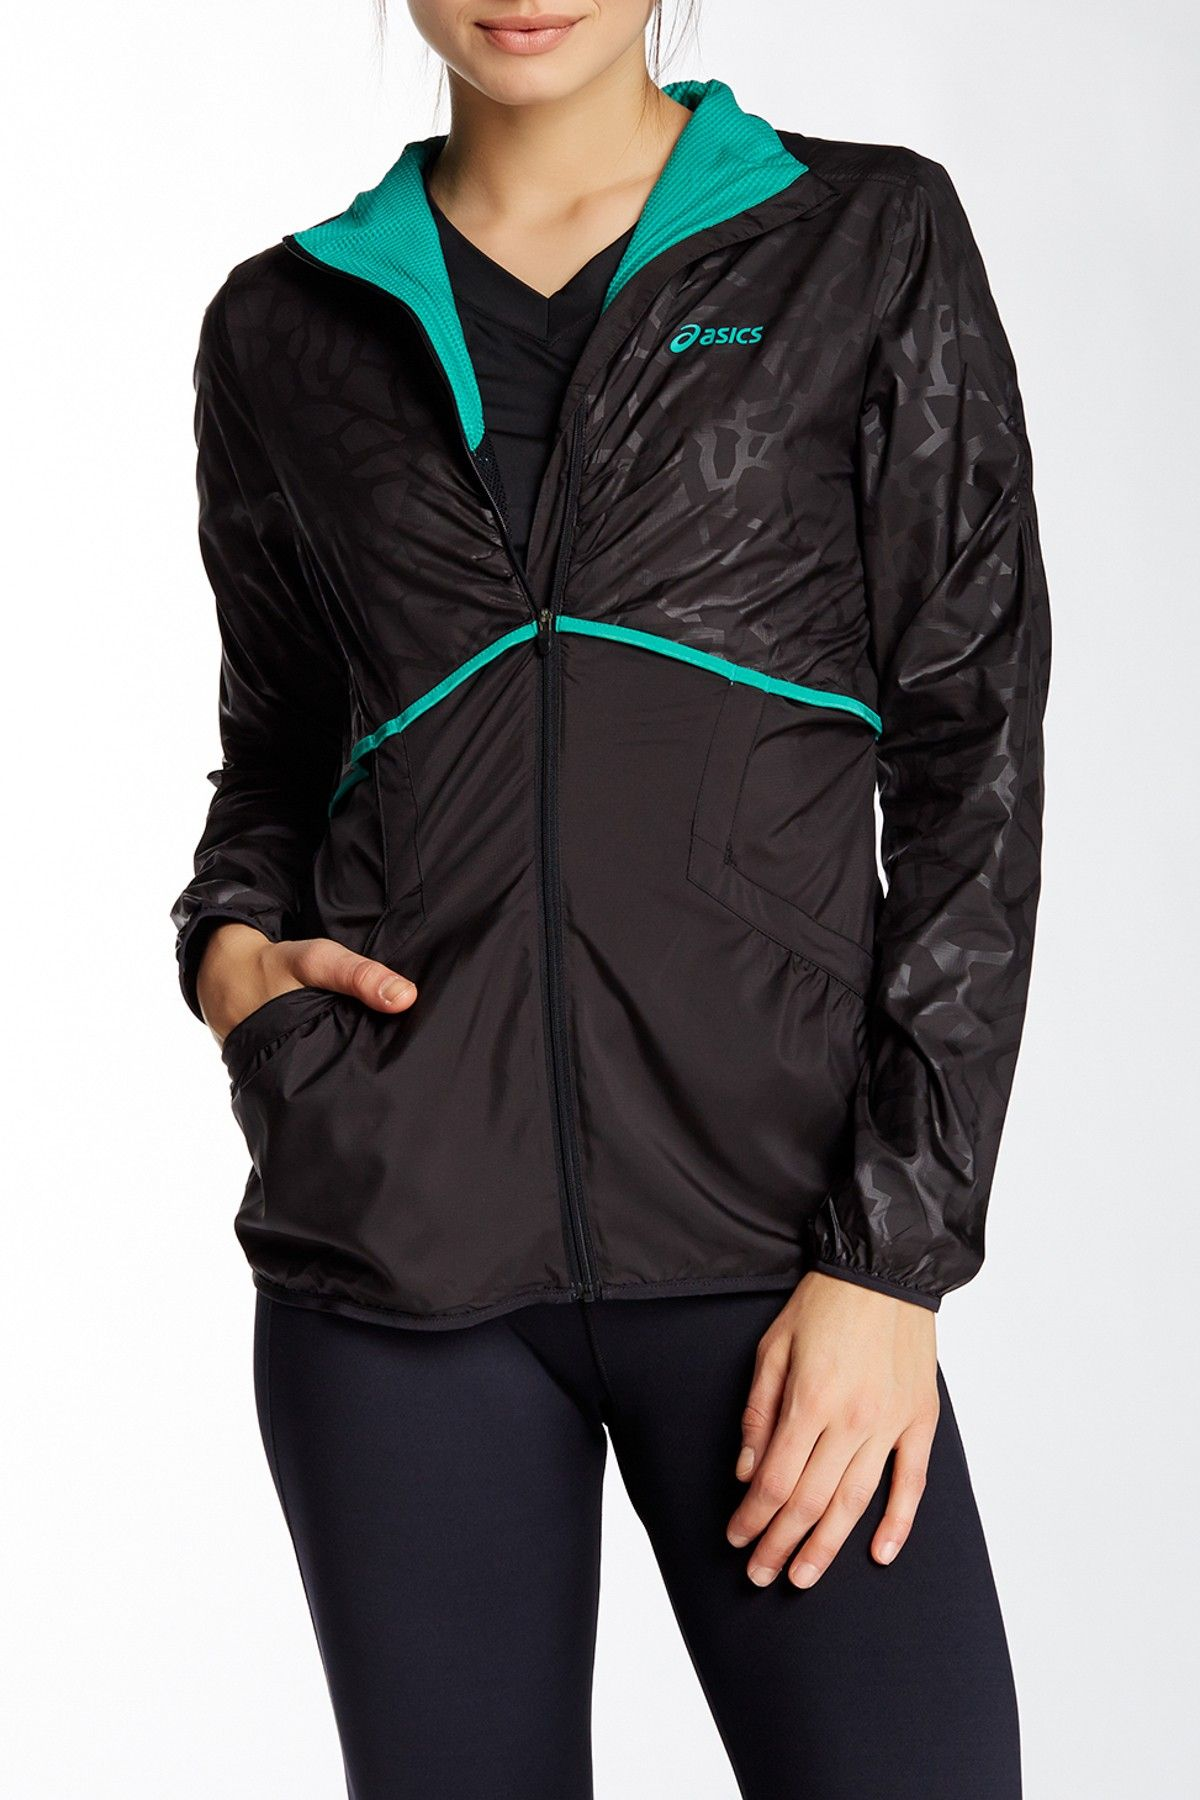 Racket Performance Jacket